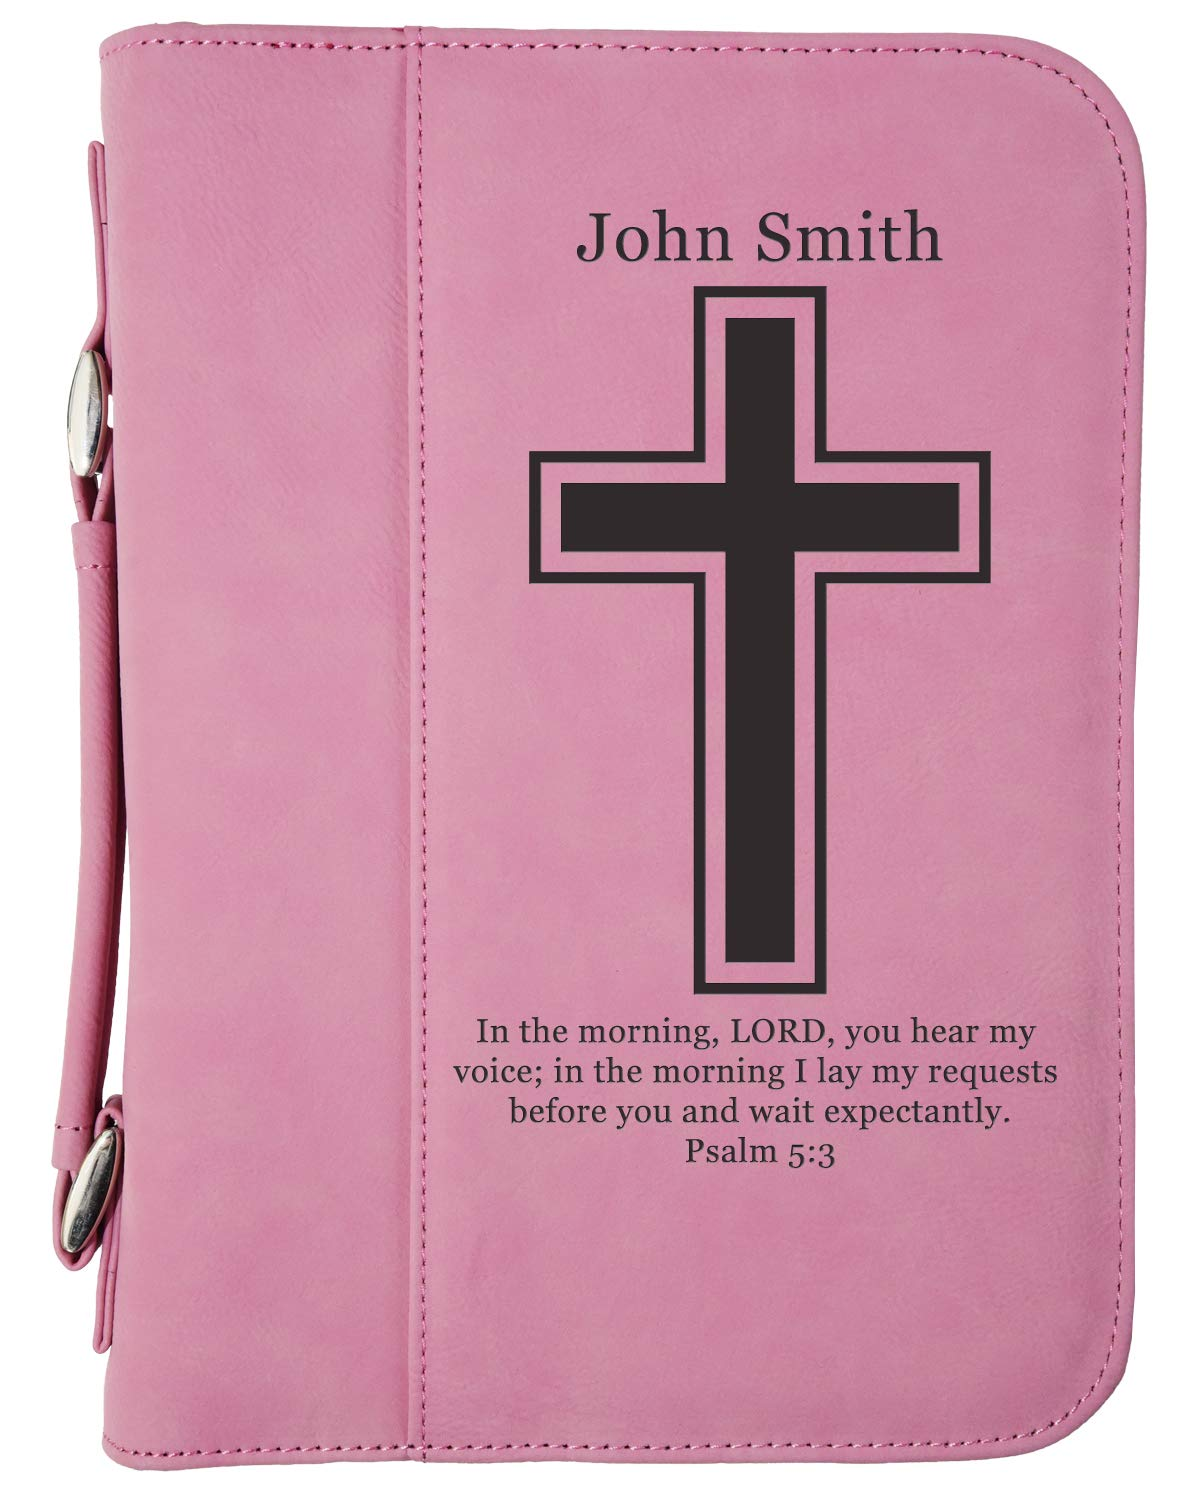 Custom Book/Bible Cover | Personalized Laser Engraved | Pink with Cross | 7 1/2'' x 10 3/4''